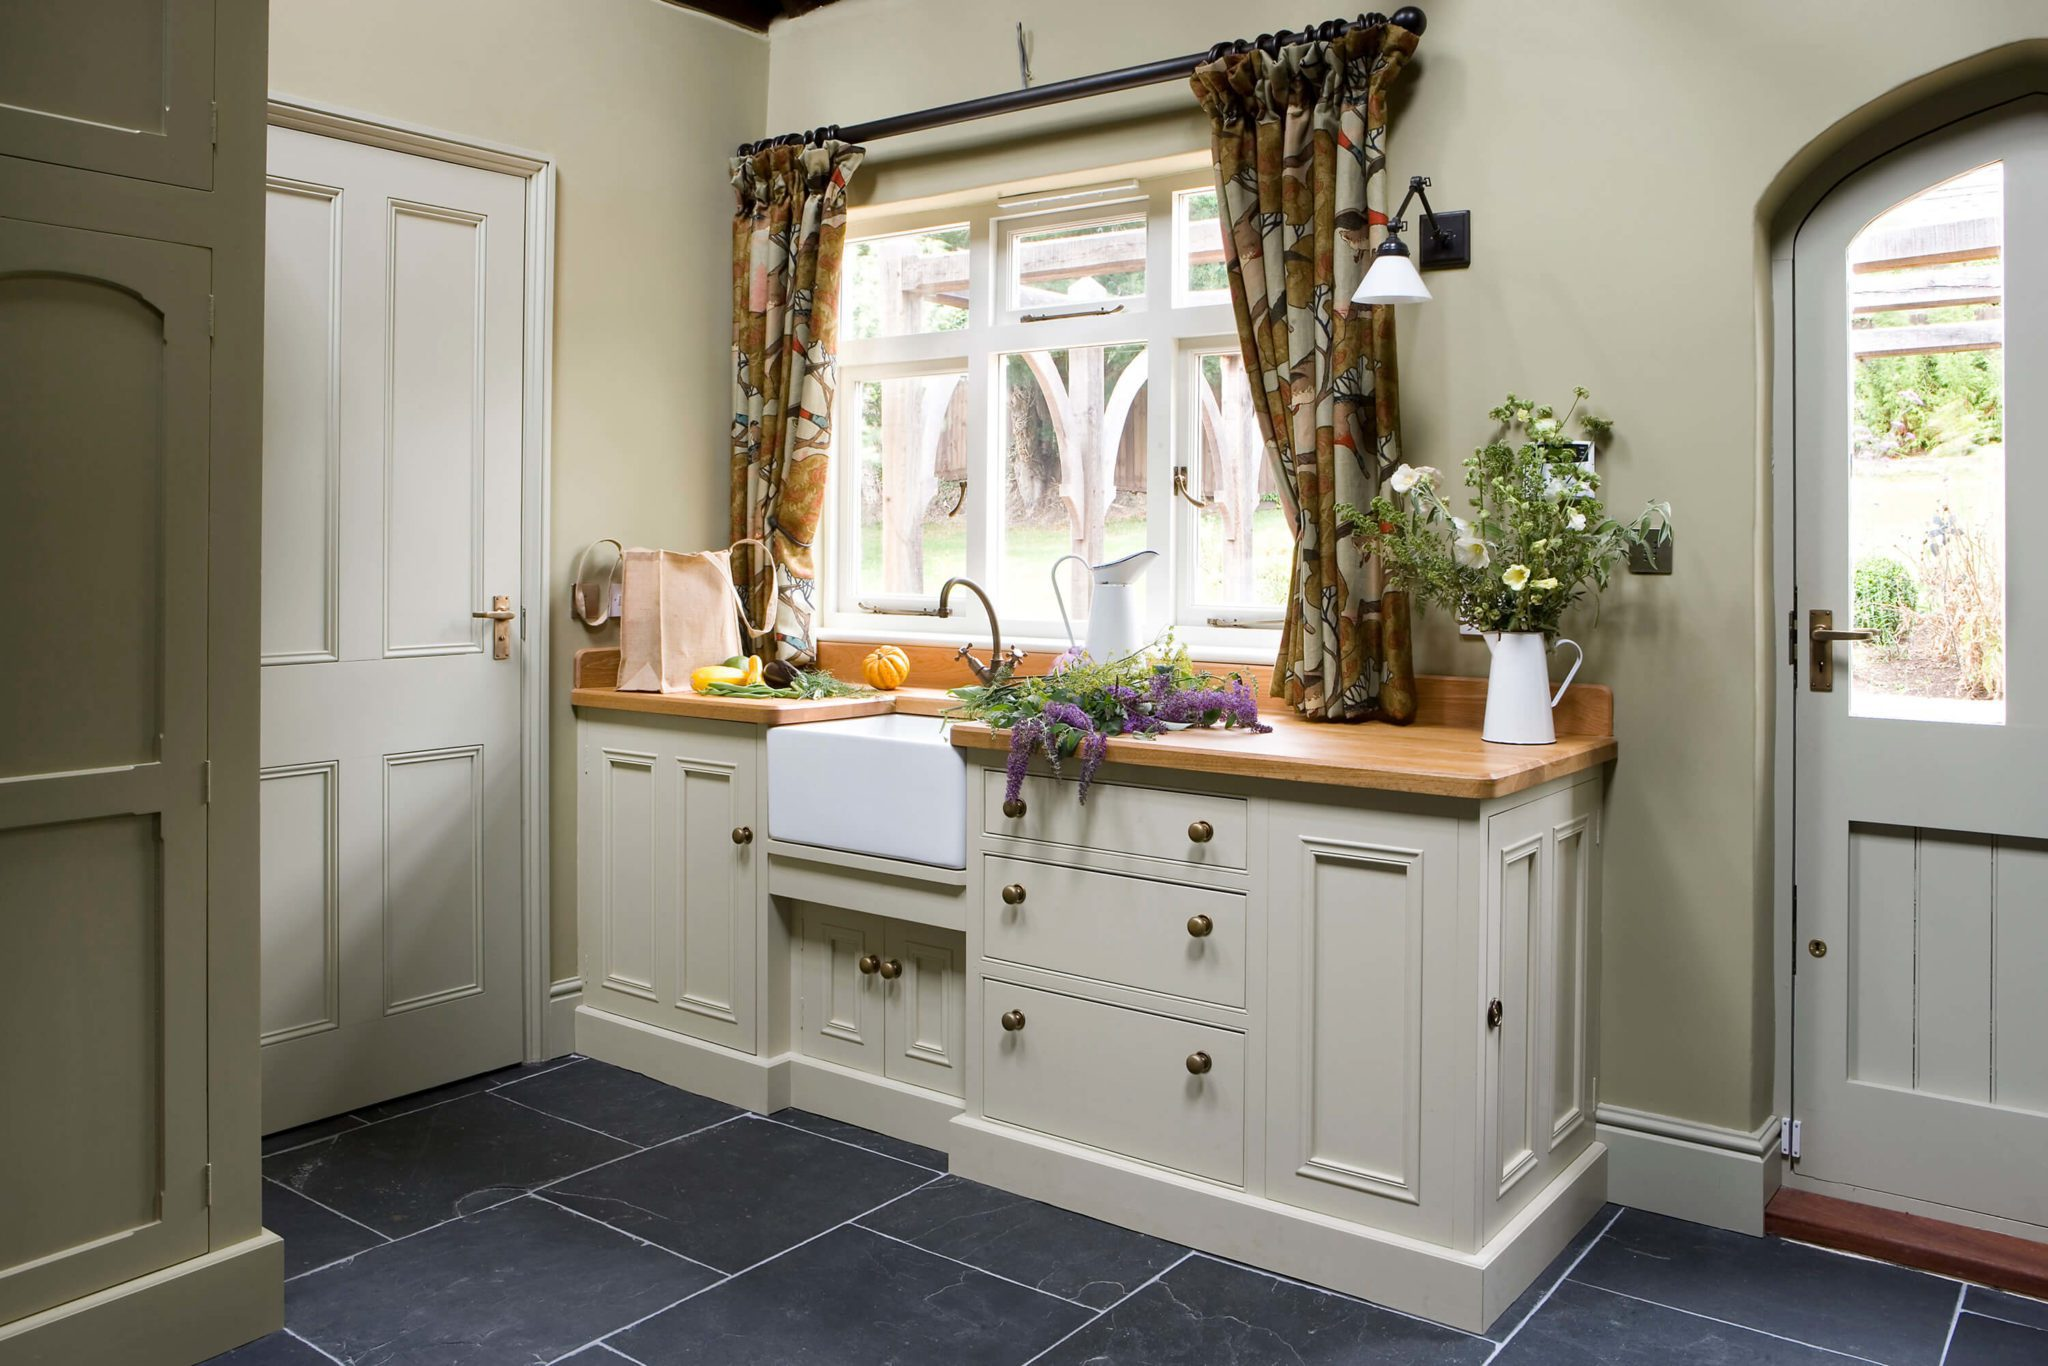 Bespoke Utility Room Furniture - Hill Farm Furniture